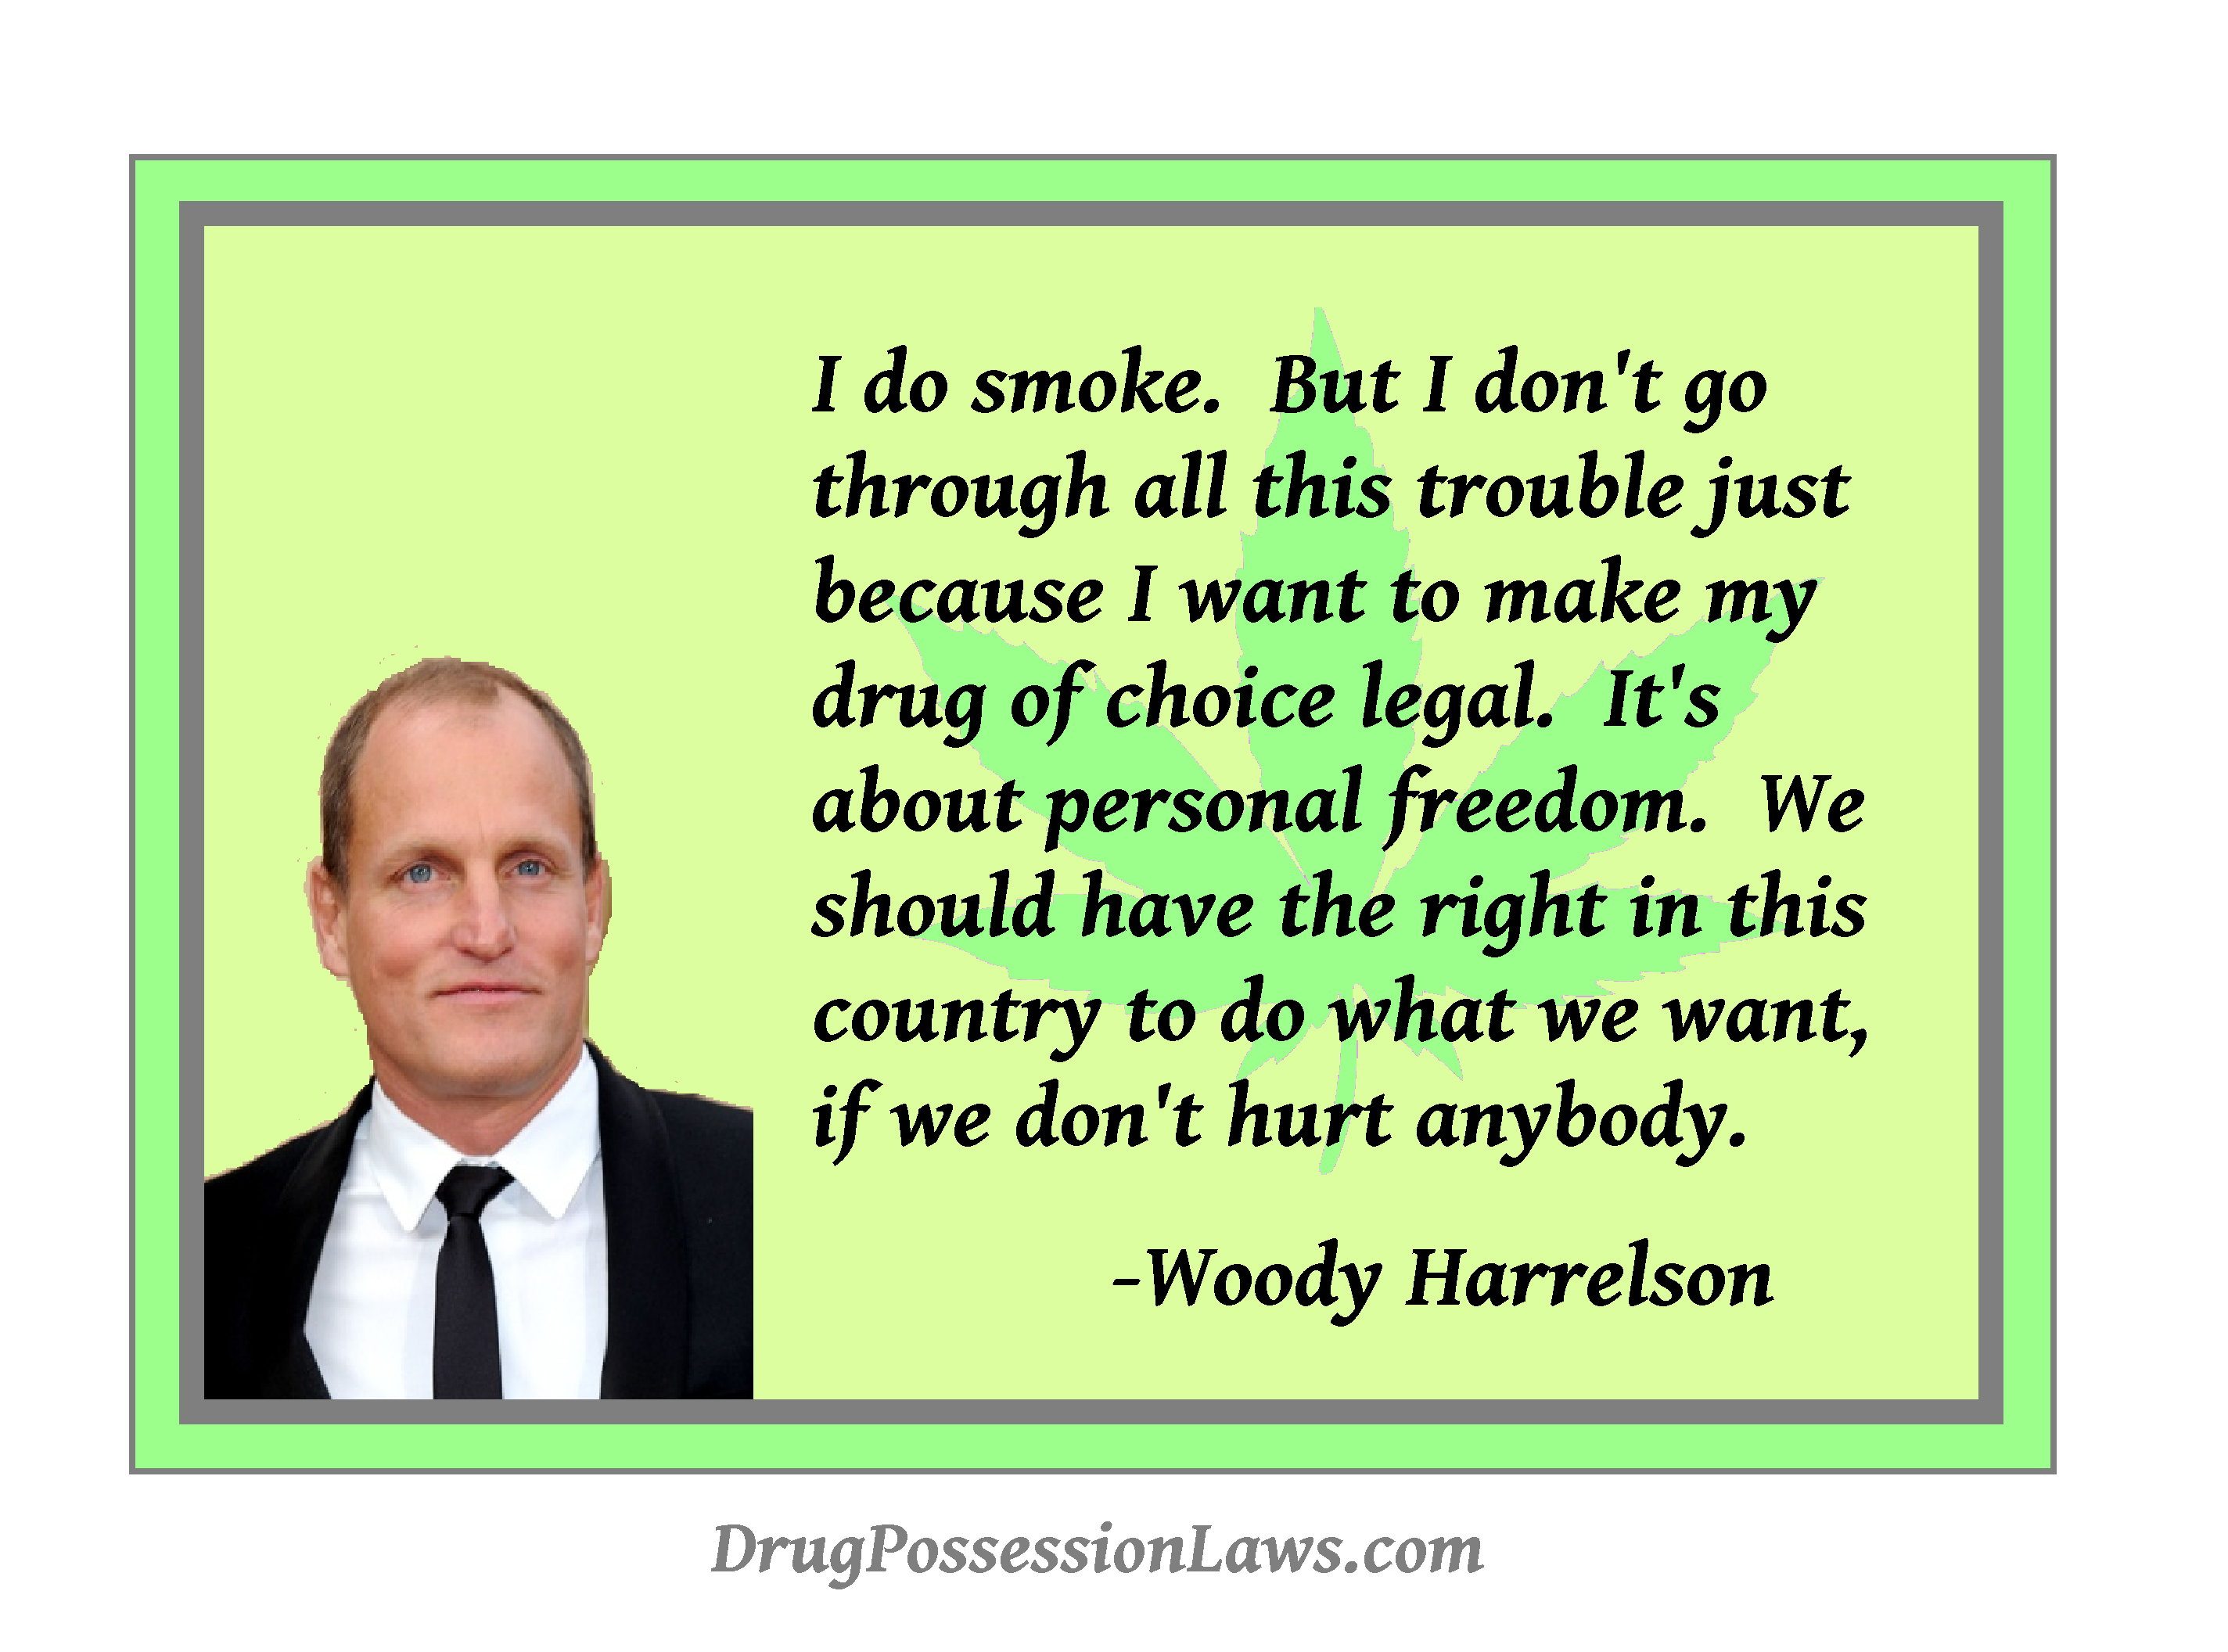 Woody Harrelson's quote #1